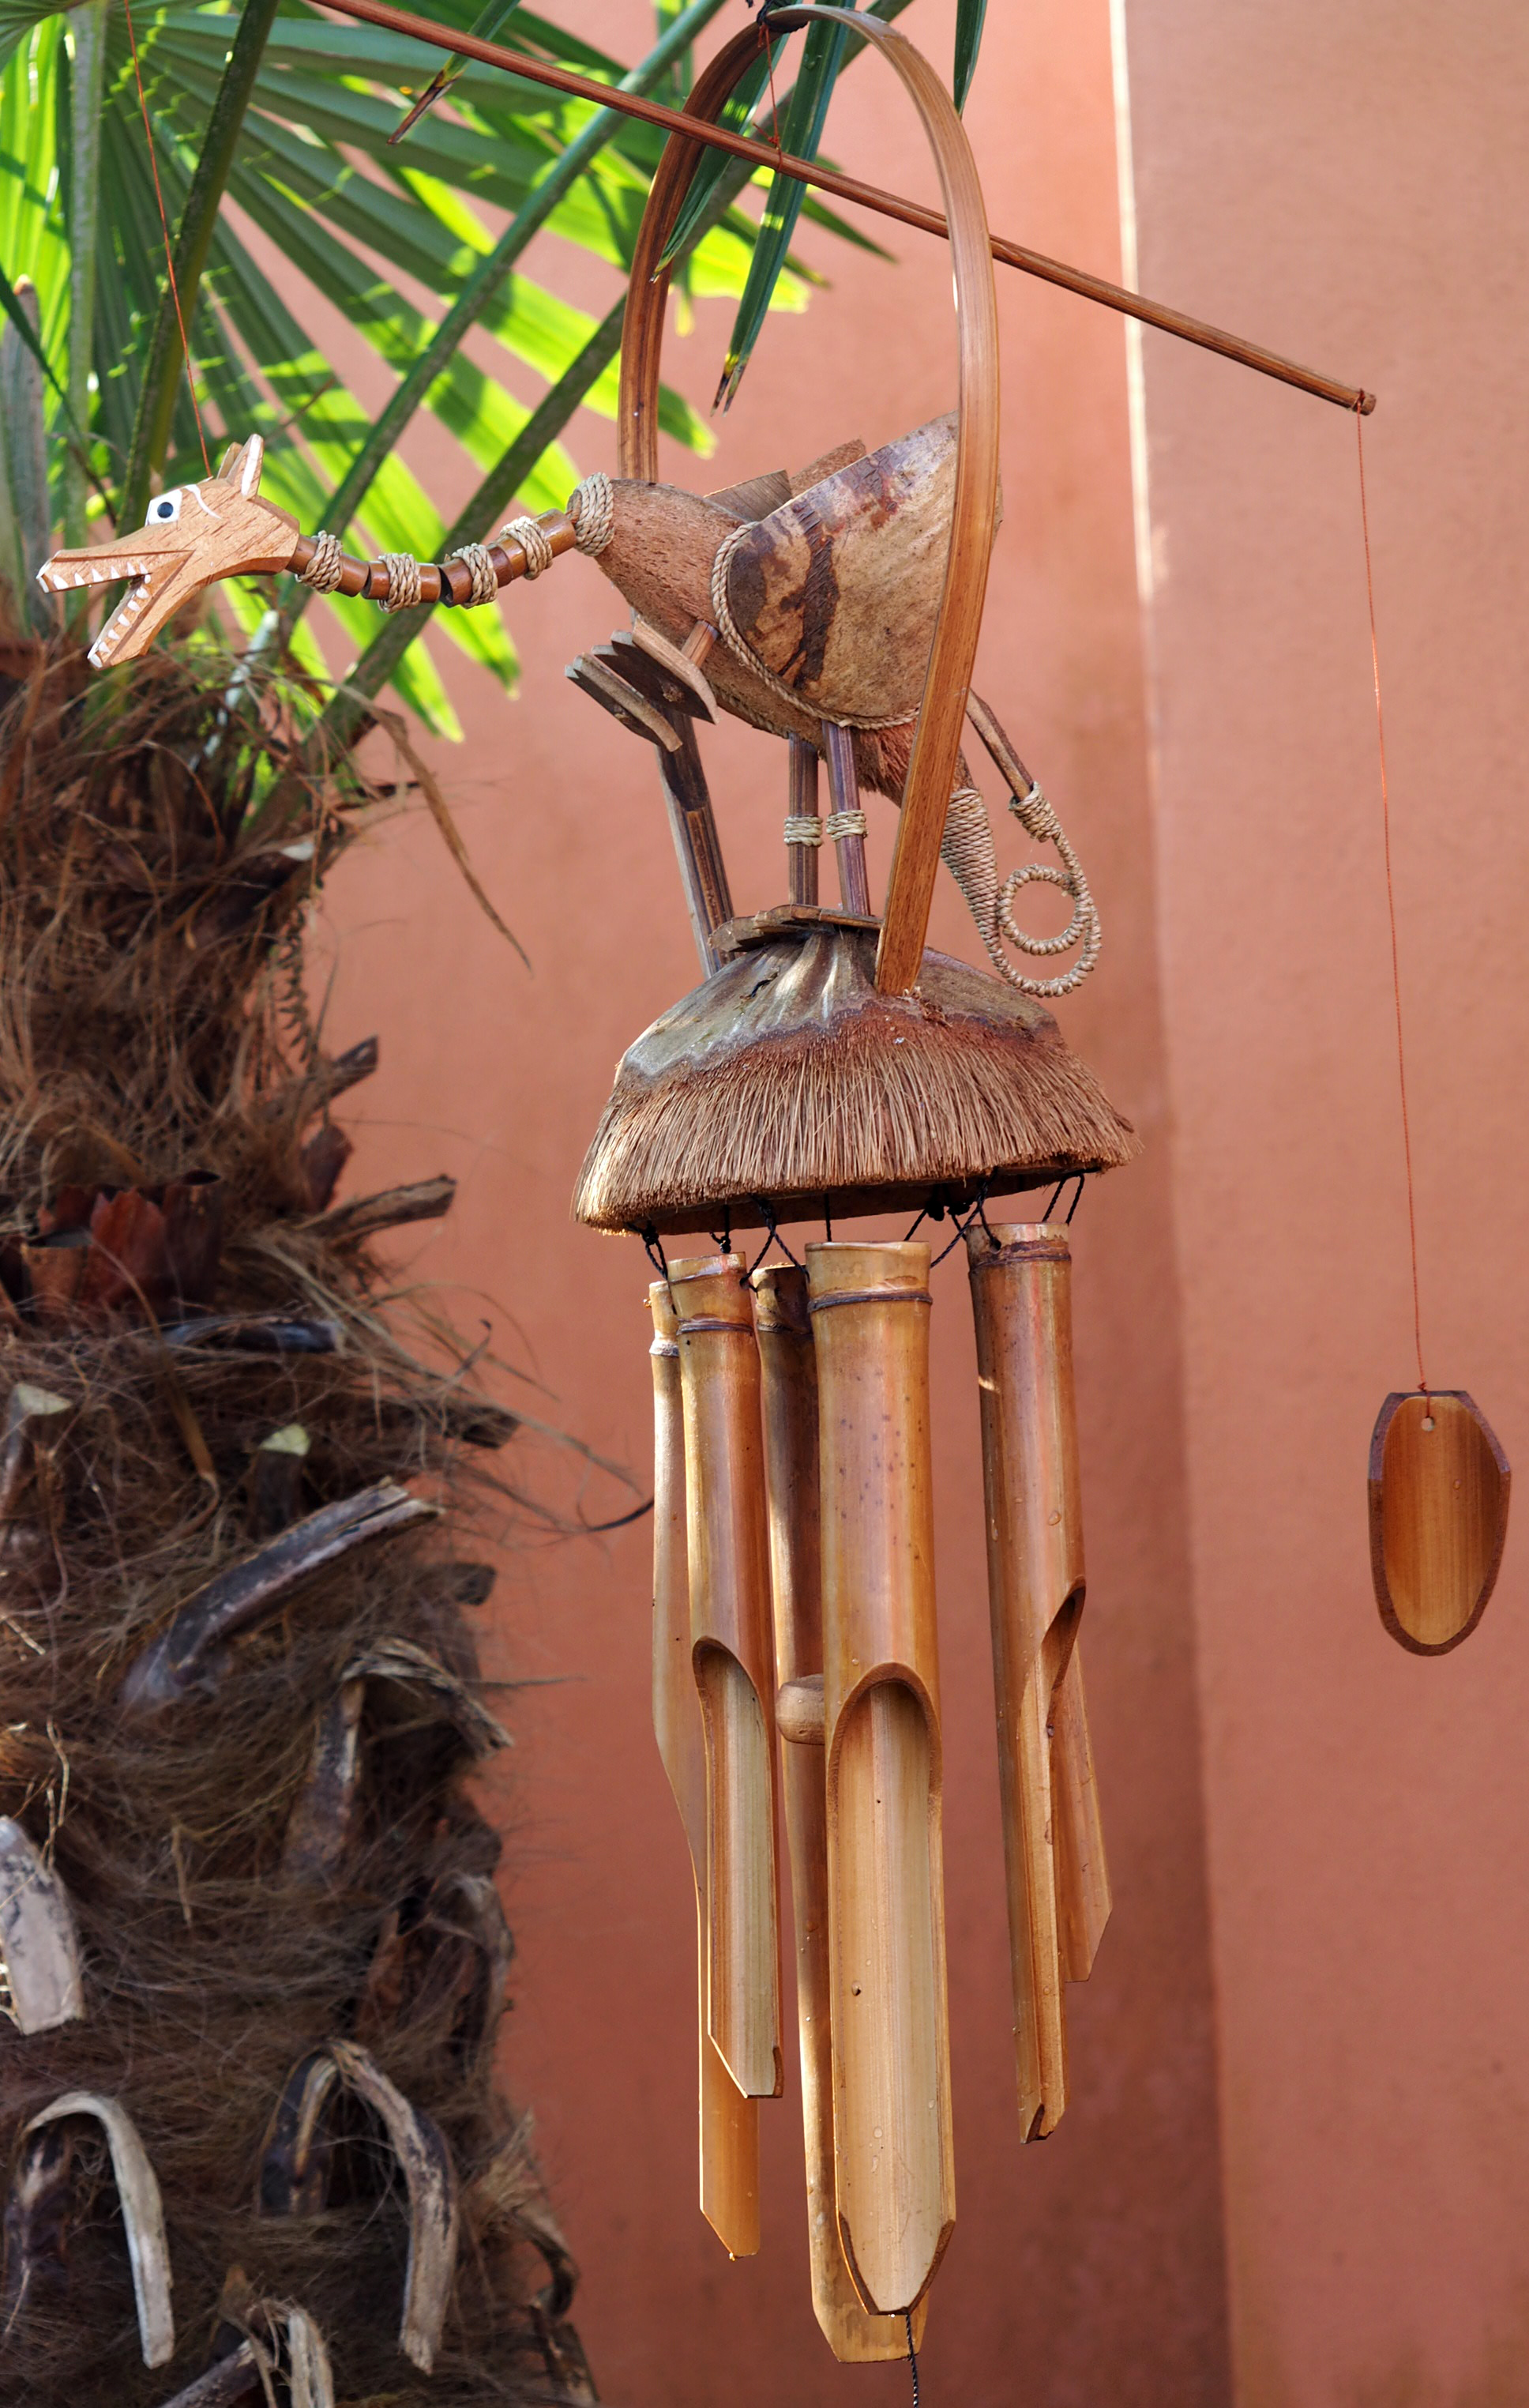 Large-Handmade-Fair-Trade-Coconut-And-Bamboo-Wind-Chime-Mobiles-6-Designs miniatuur 8